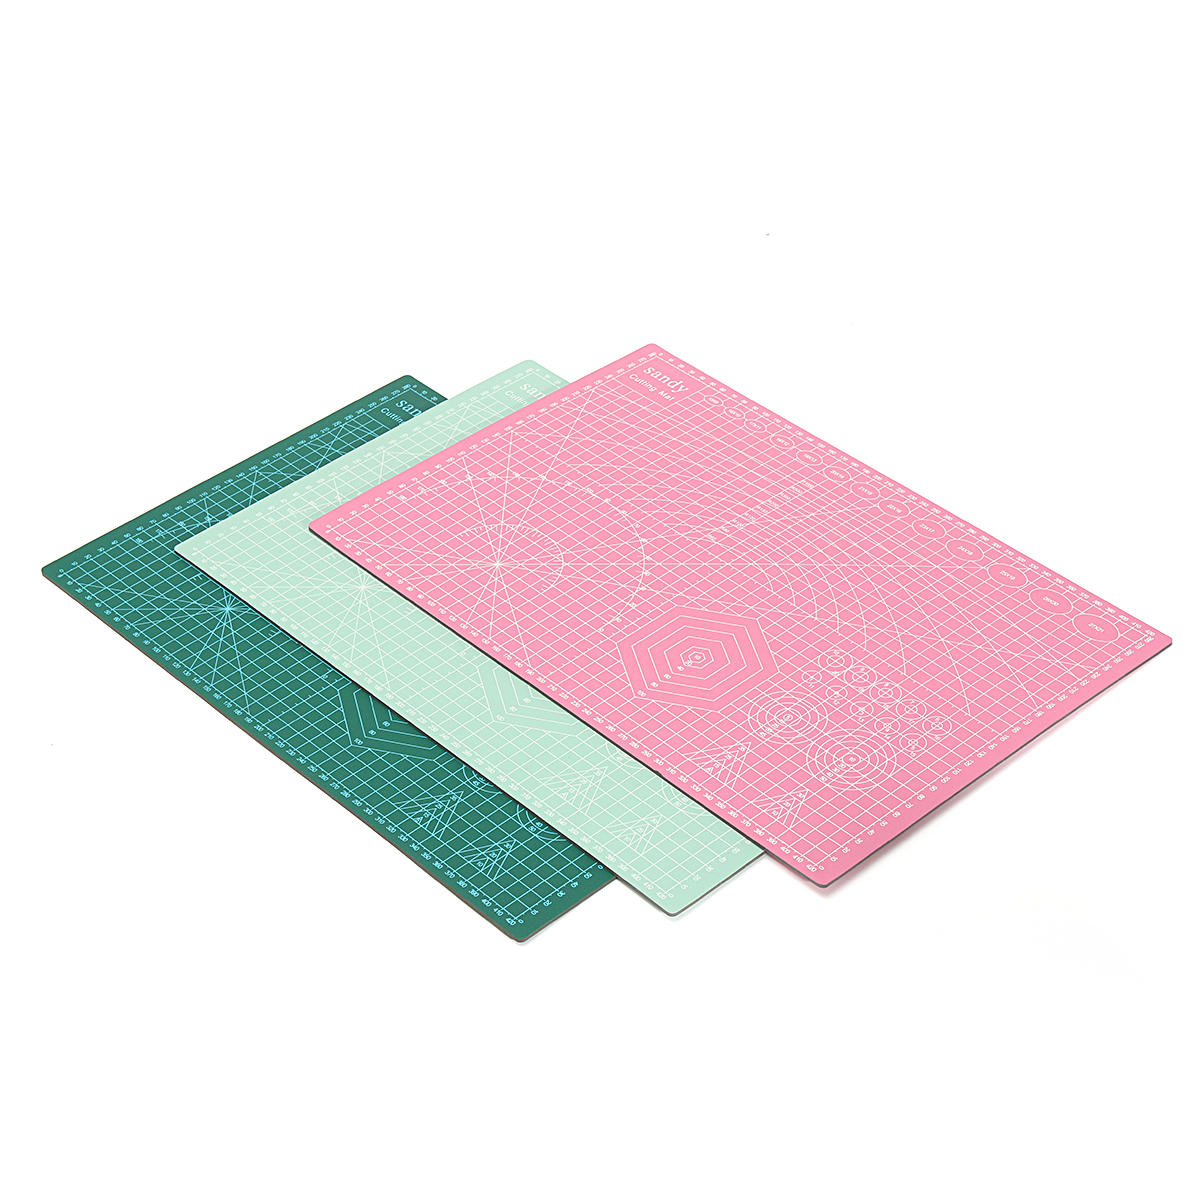 Suleve Cm01 A3 Pvc Cutting Mat Eco Self Healing Colorful For Craft Diy 450x300x2 5mm